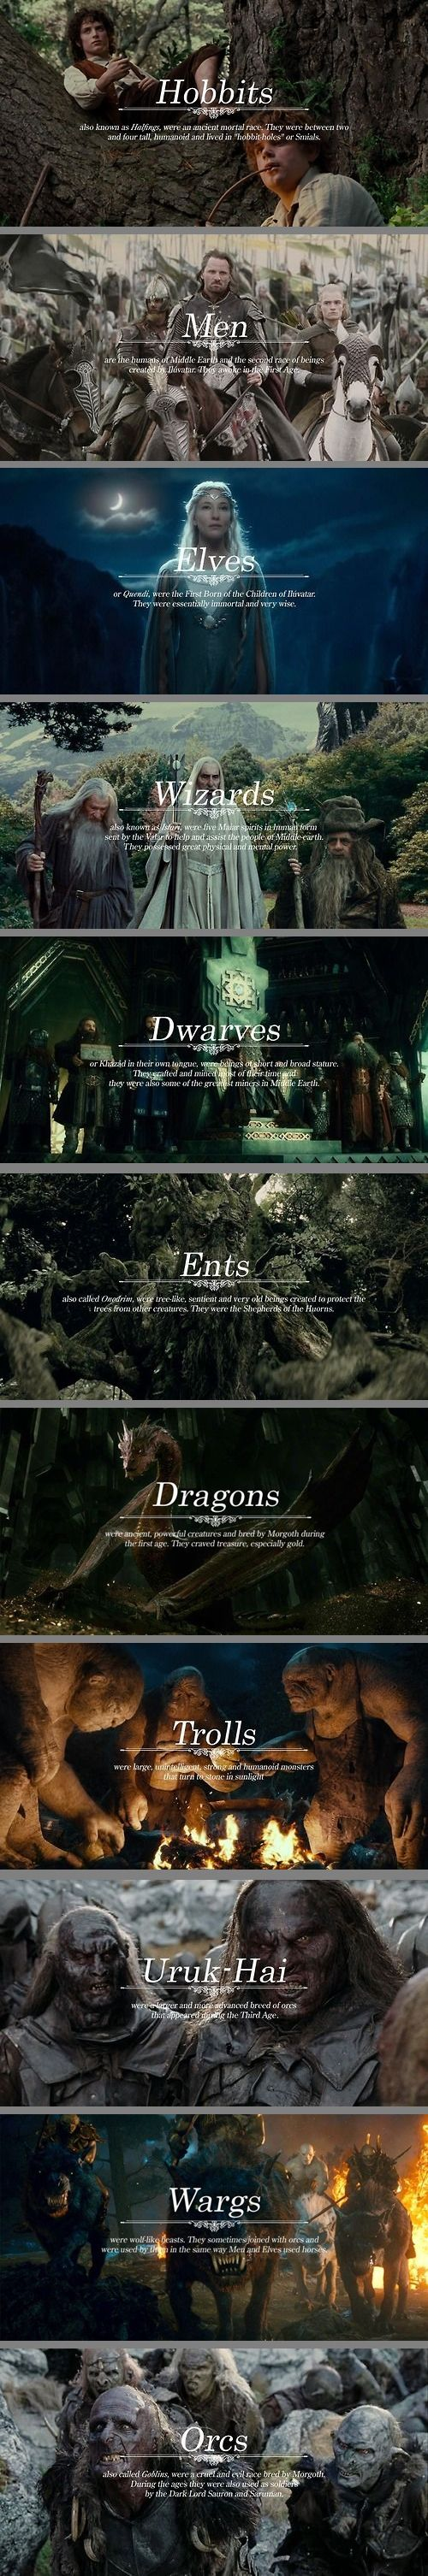 Races and Creatures of Middle Earth